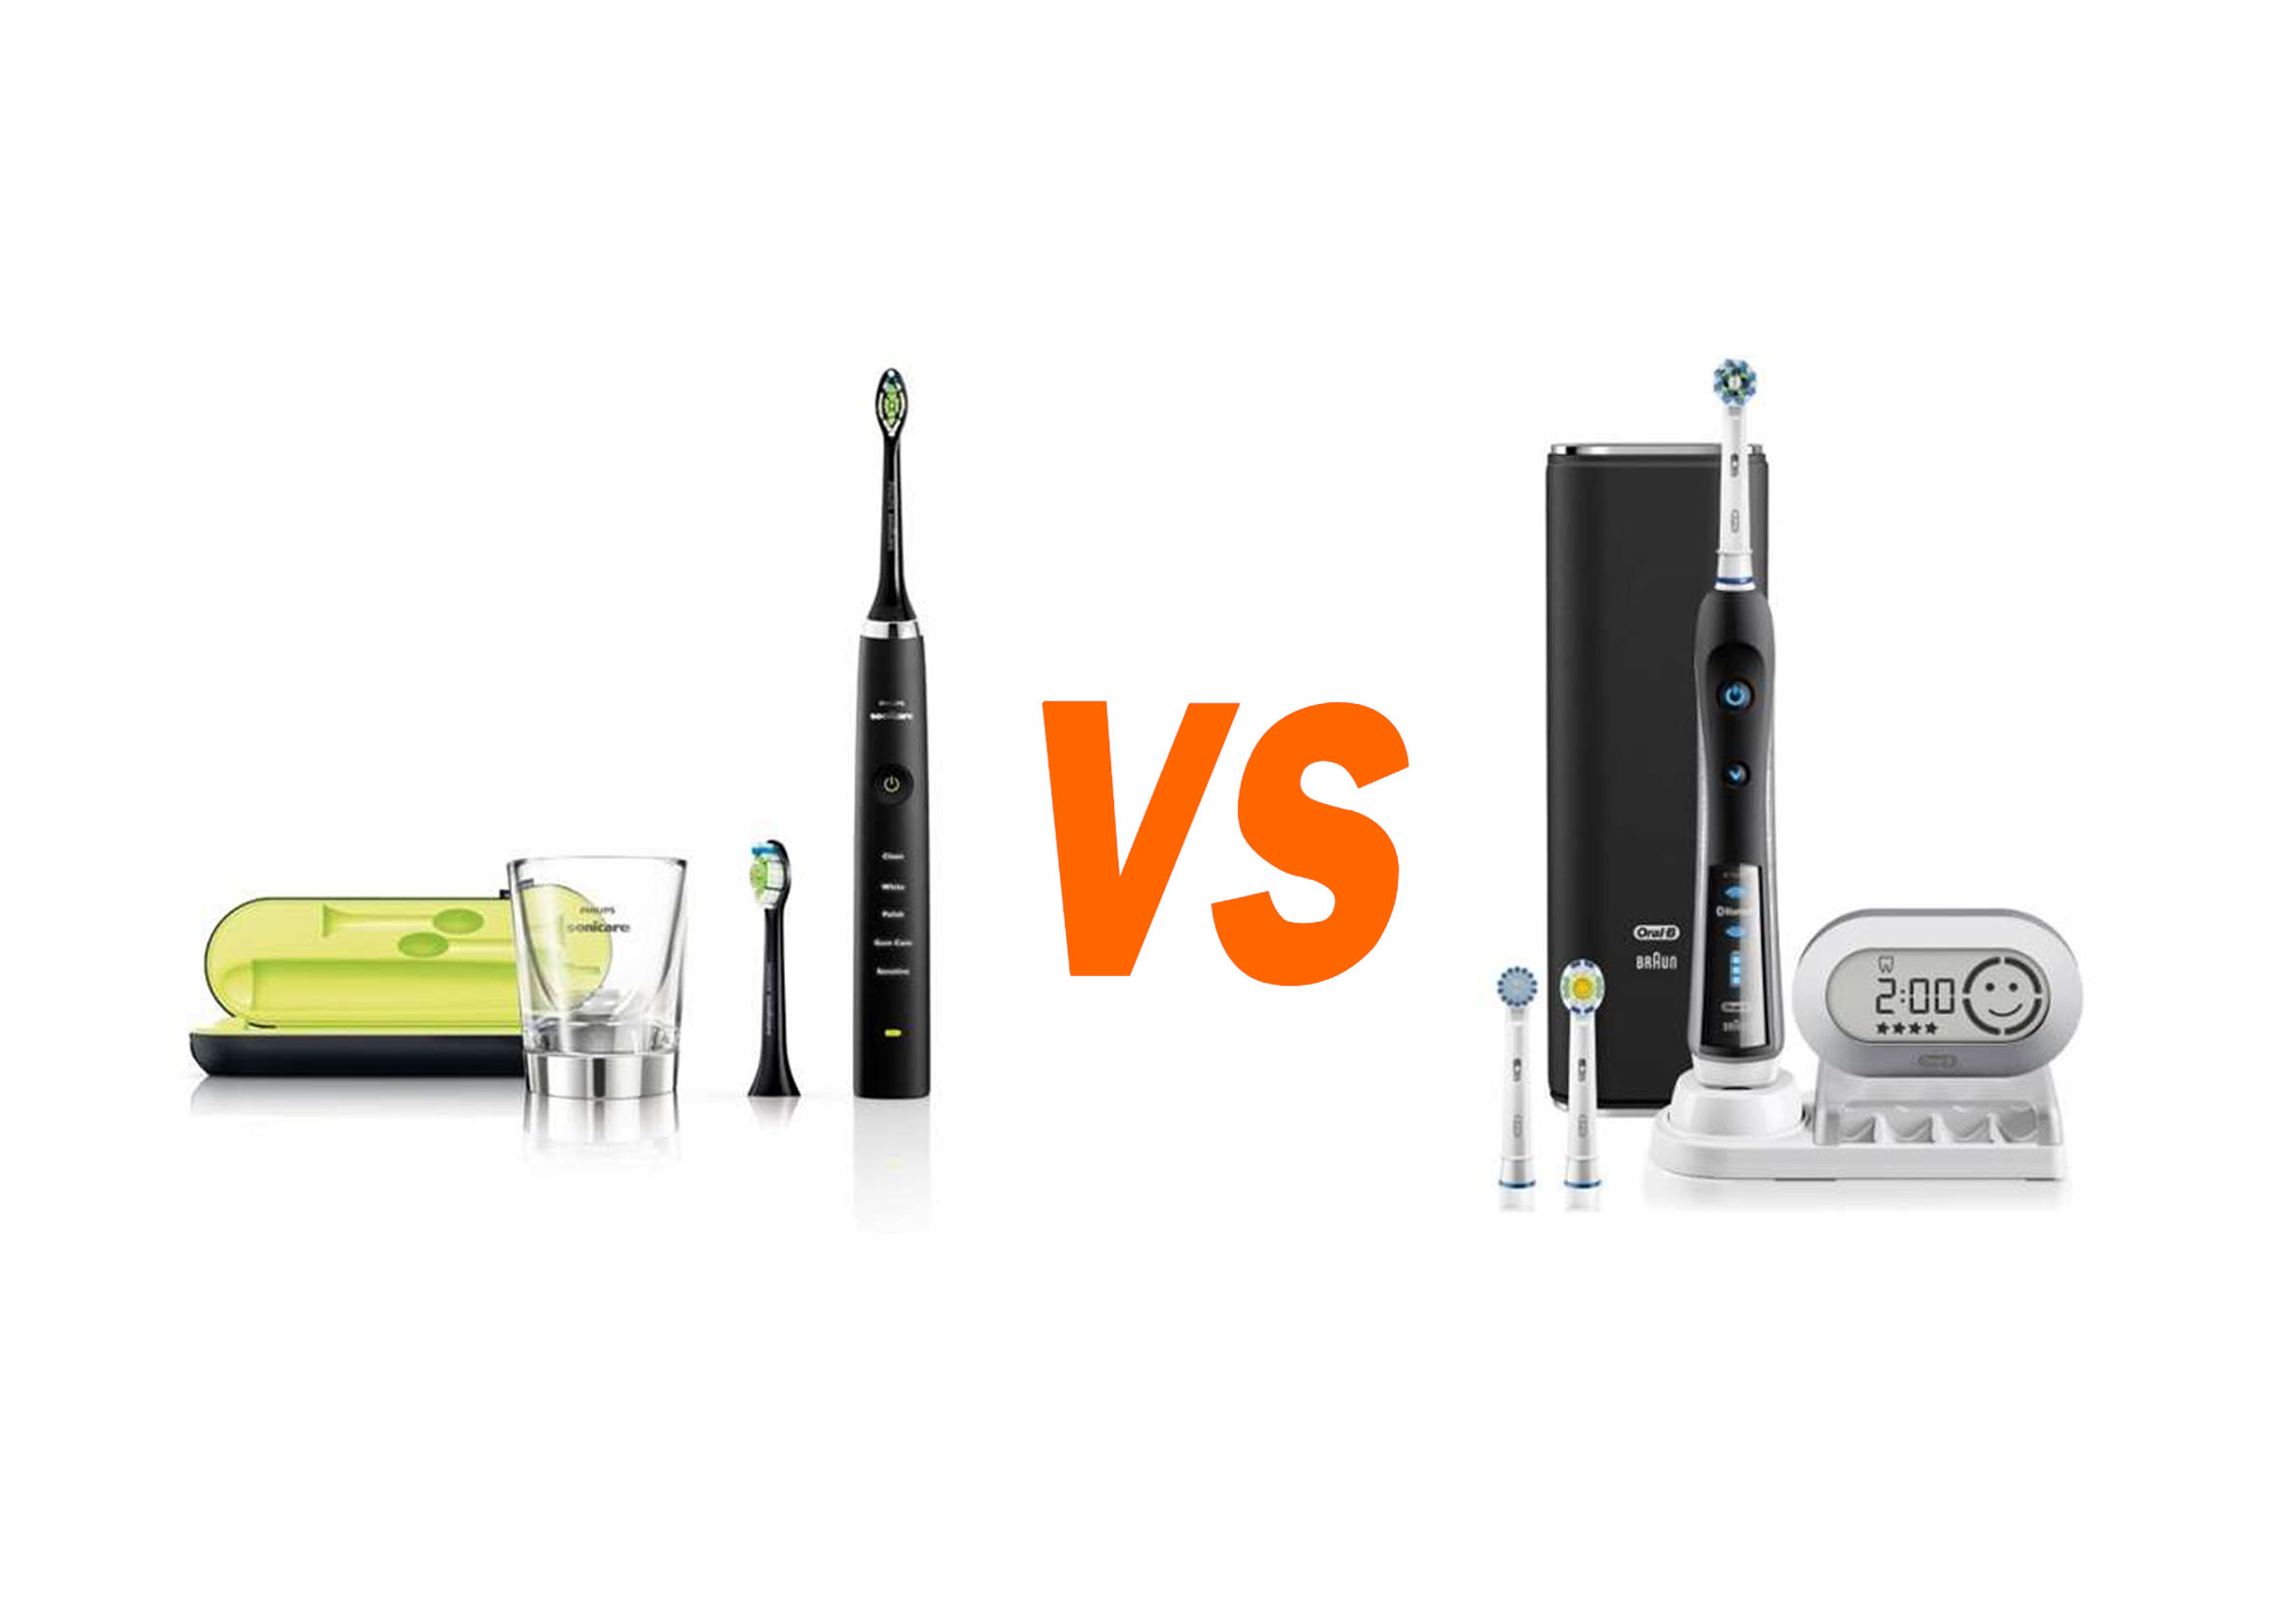 Sonicare DiamondClean VS Oral-B Pro 7000